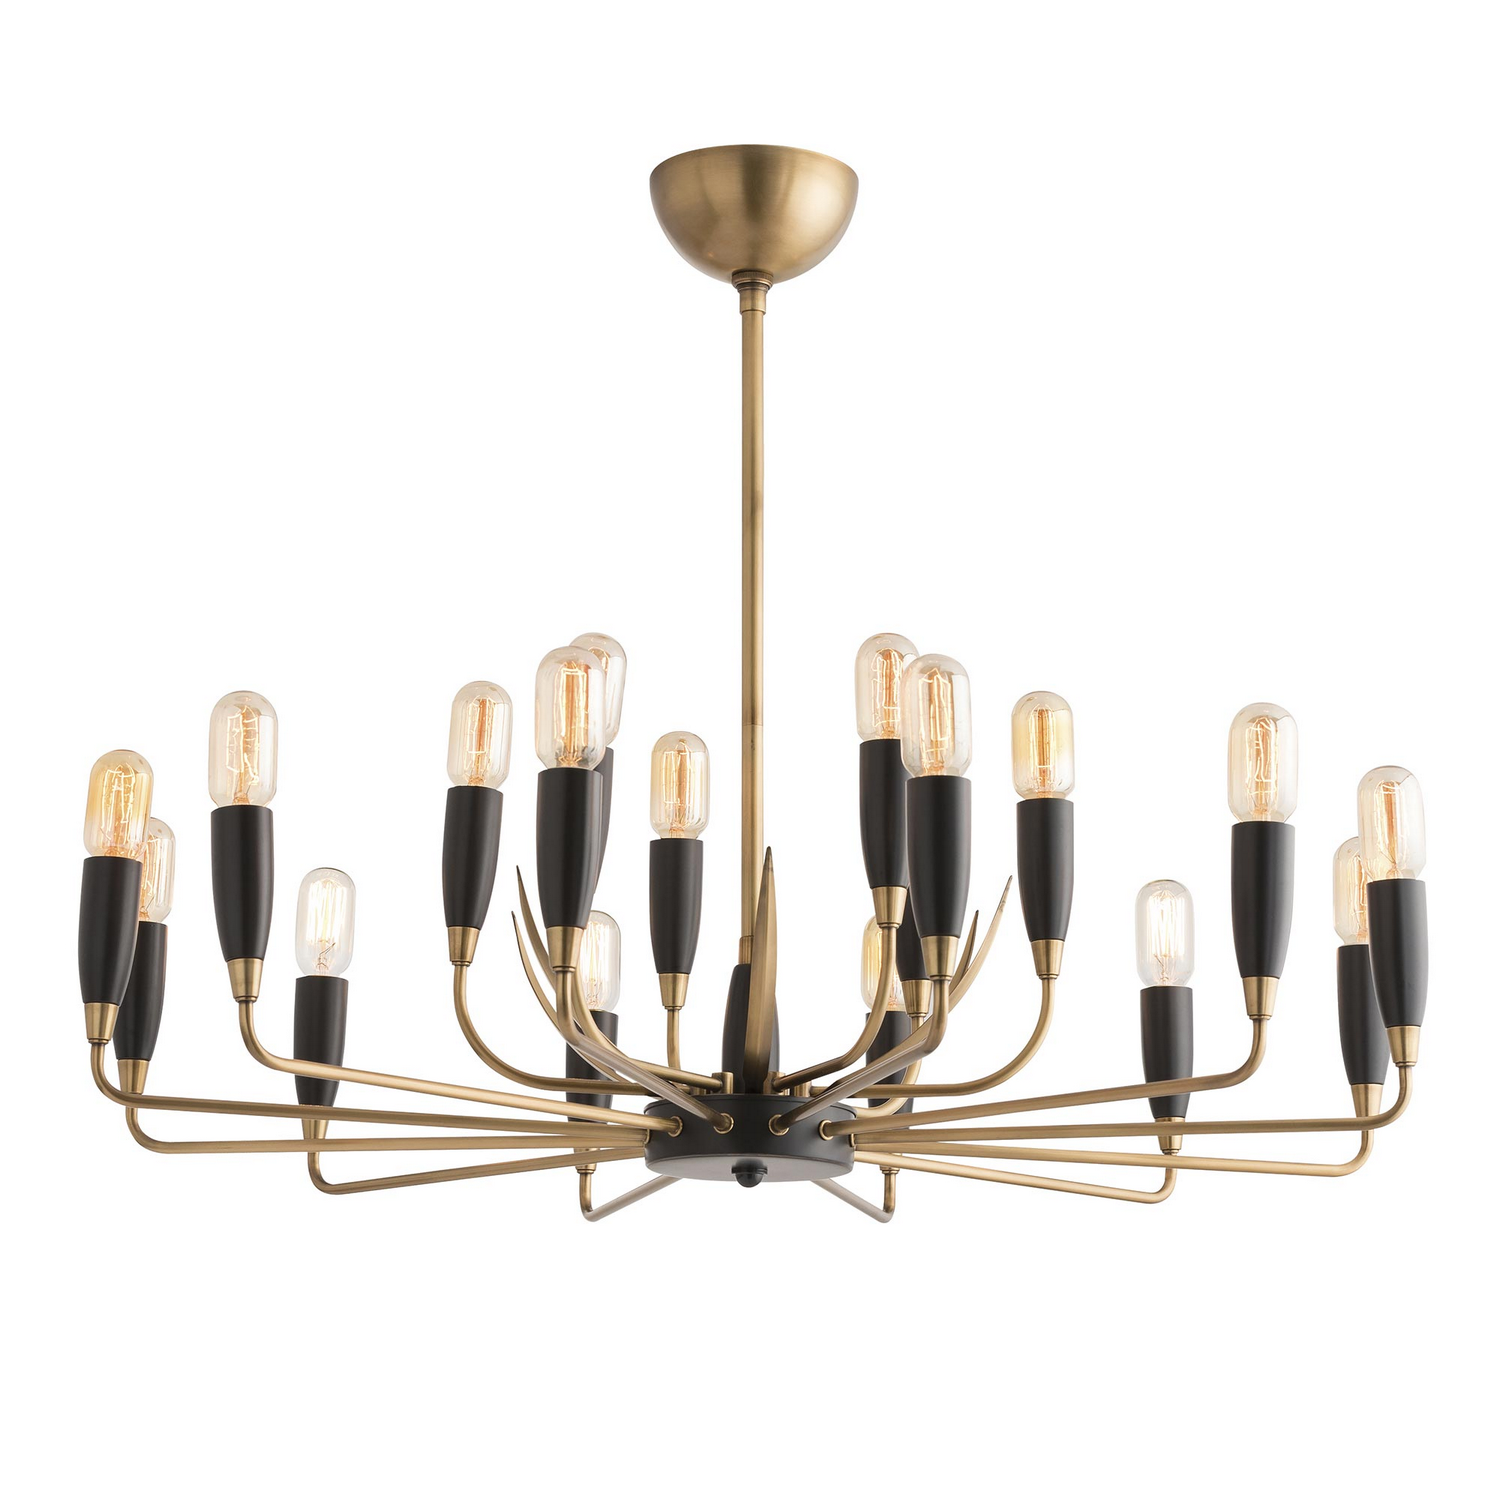 Chandelier from the Hardy collection by Arteriors 89044